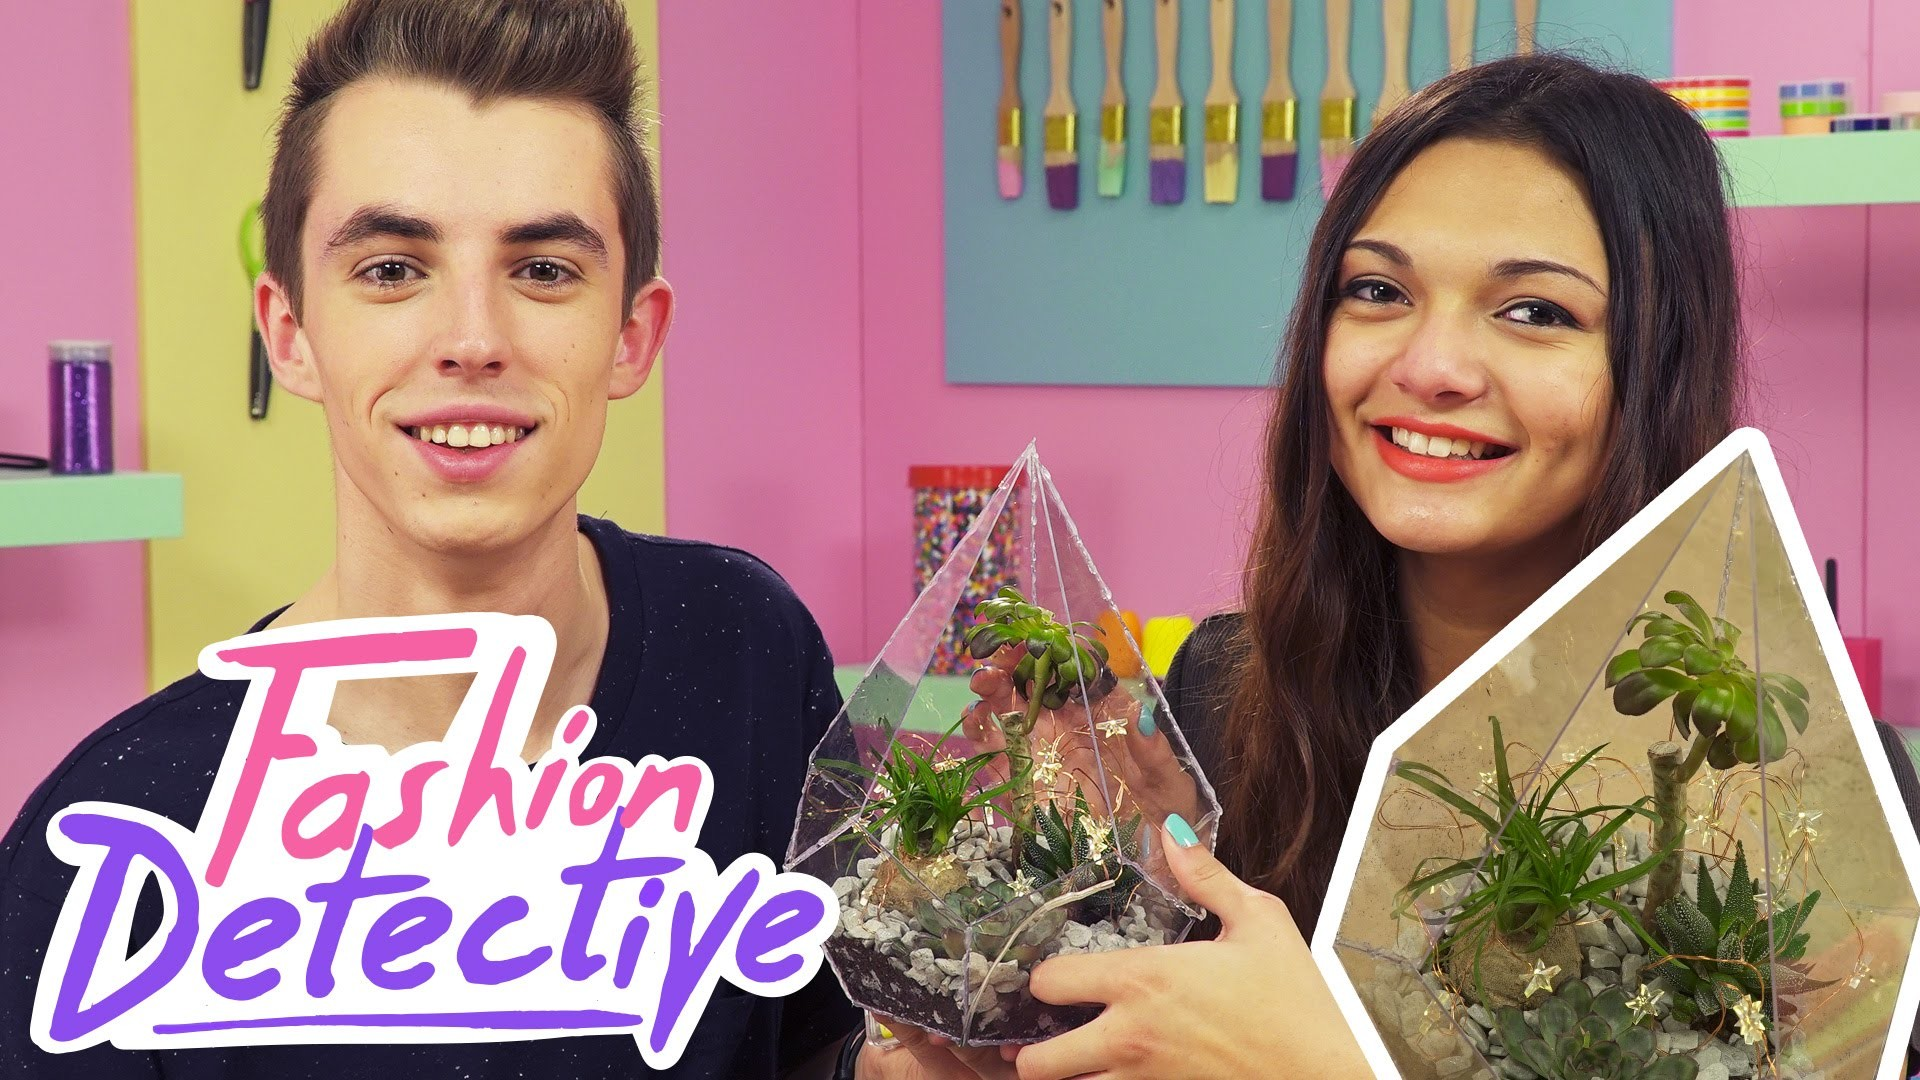 DIY - On crée notre Terrarium - [FASHION DETECTIVE #10]